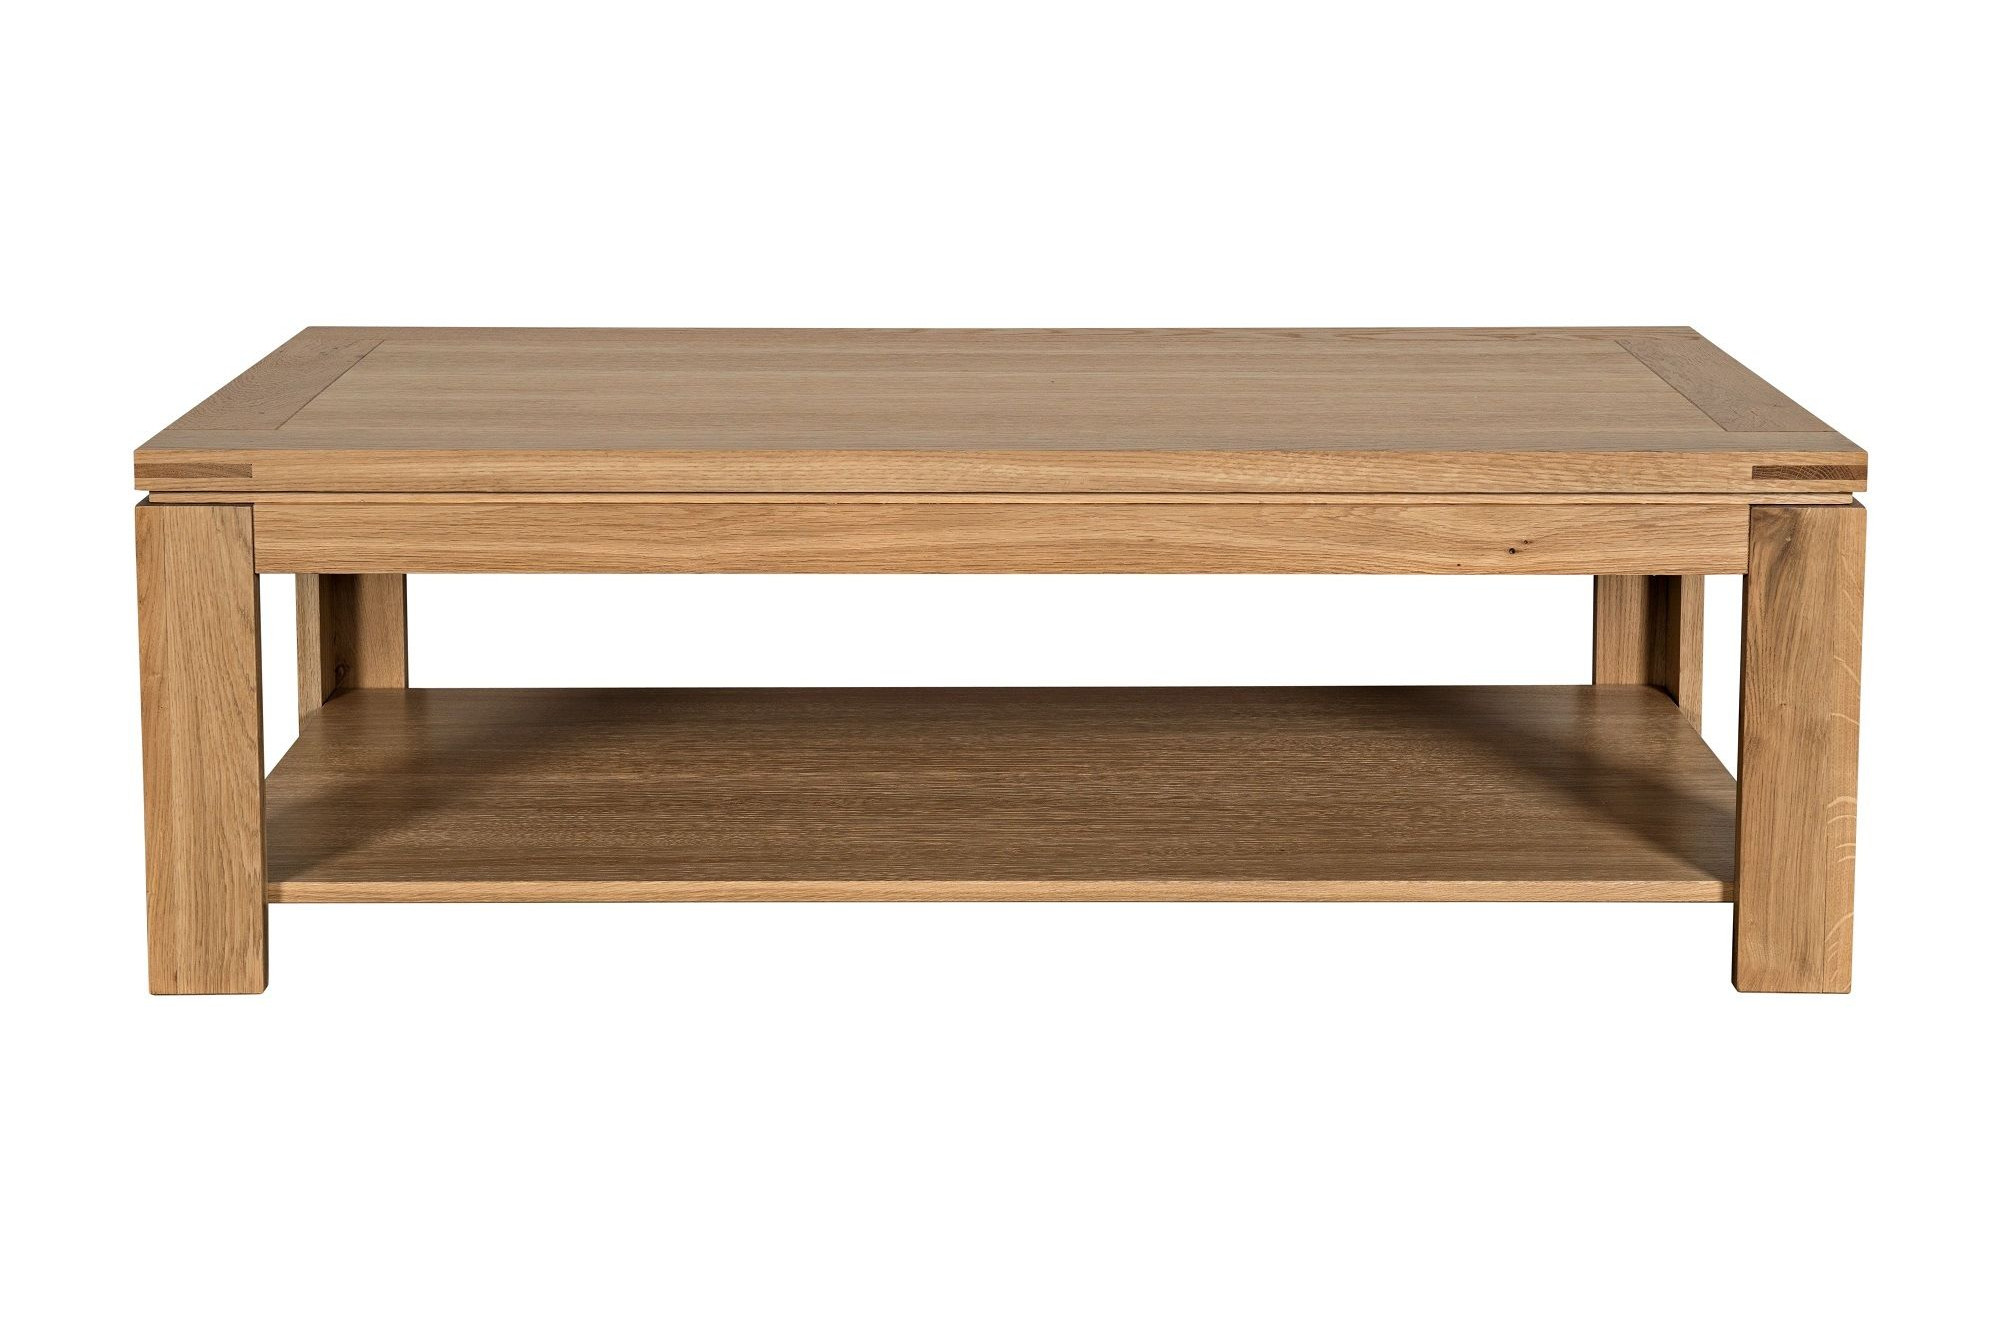 Table Basse Chene Clair Massif Table Basse Moderne En Bois Massif Chene De France Hellin